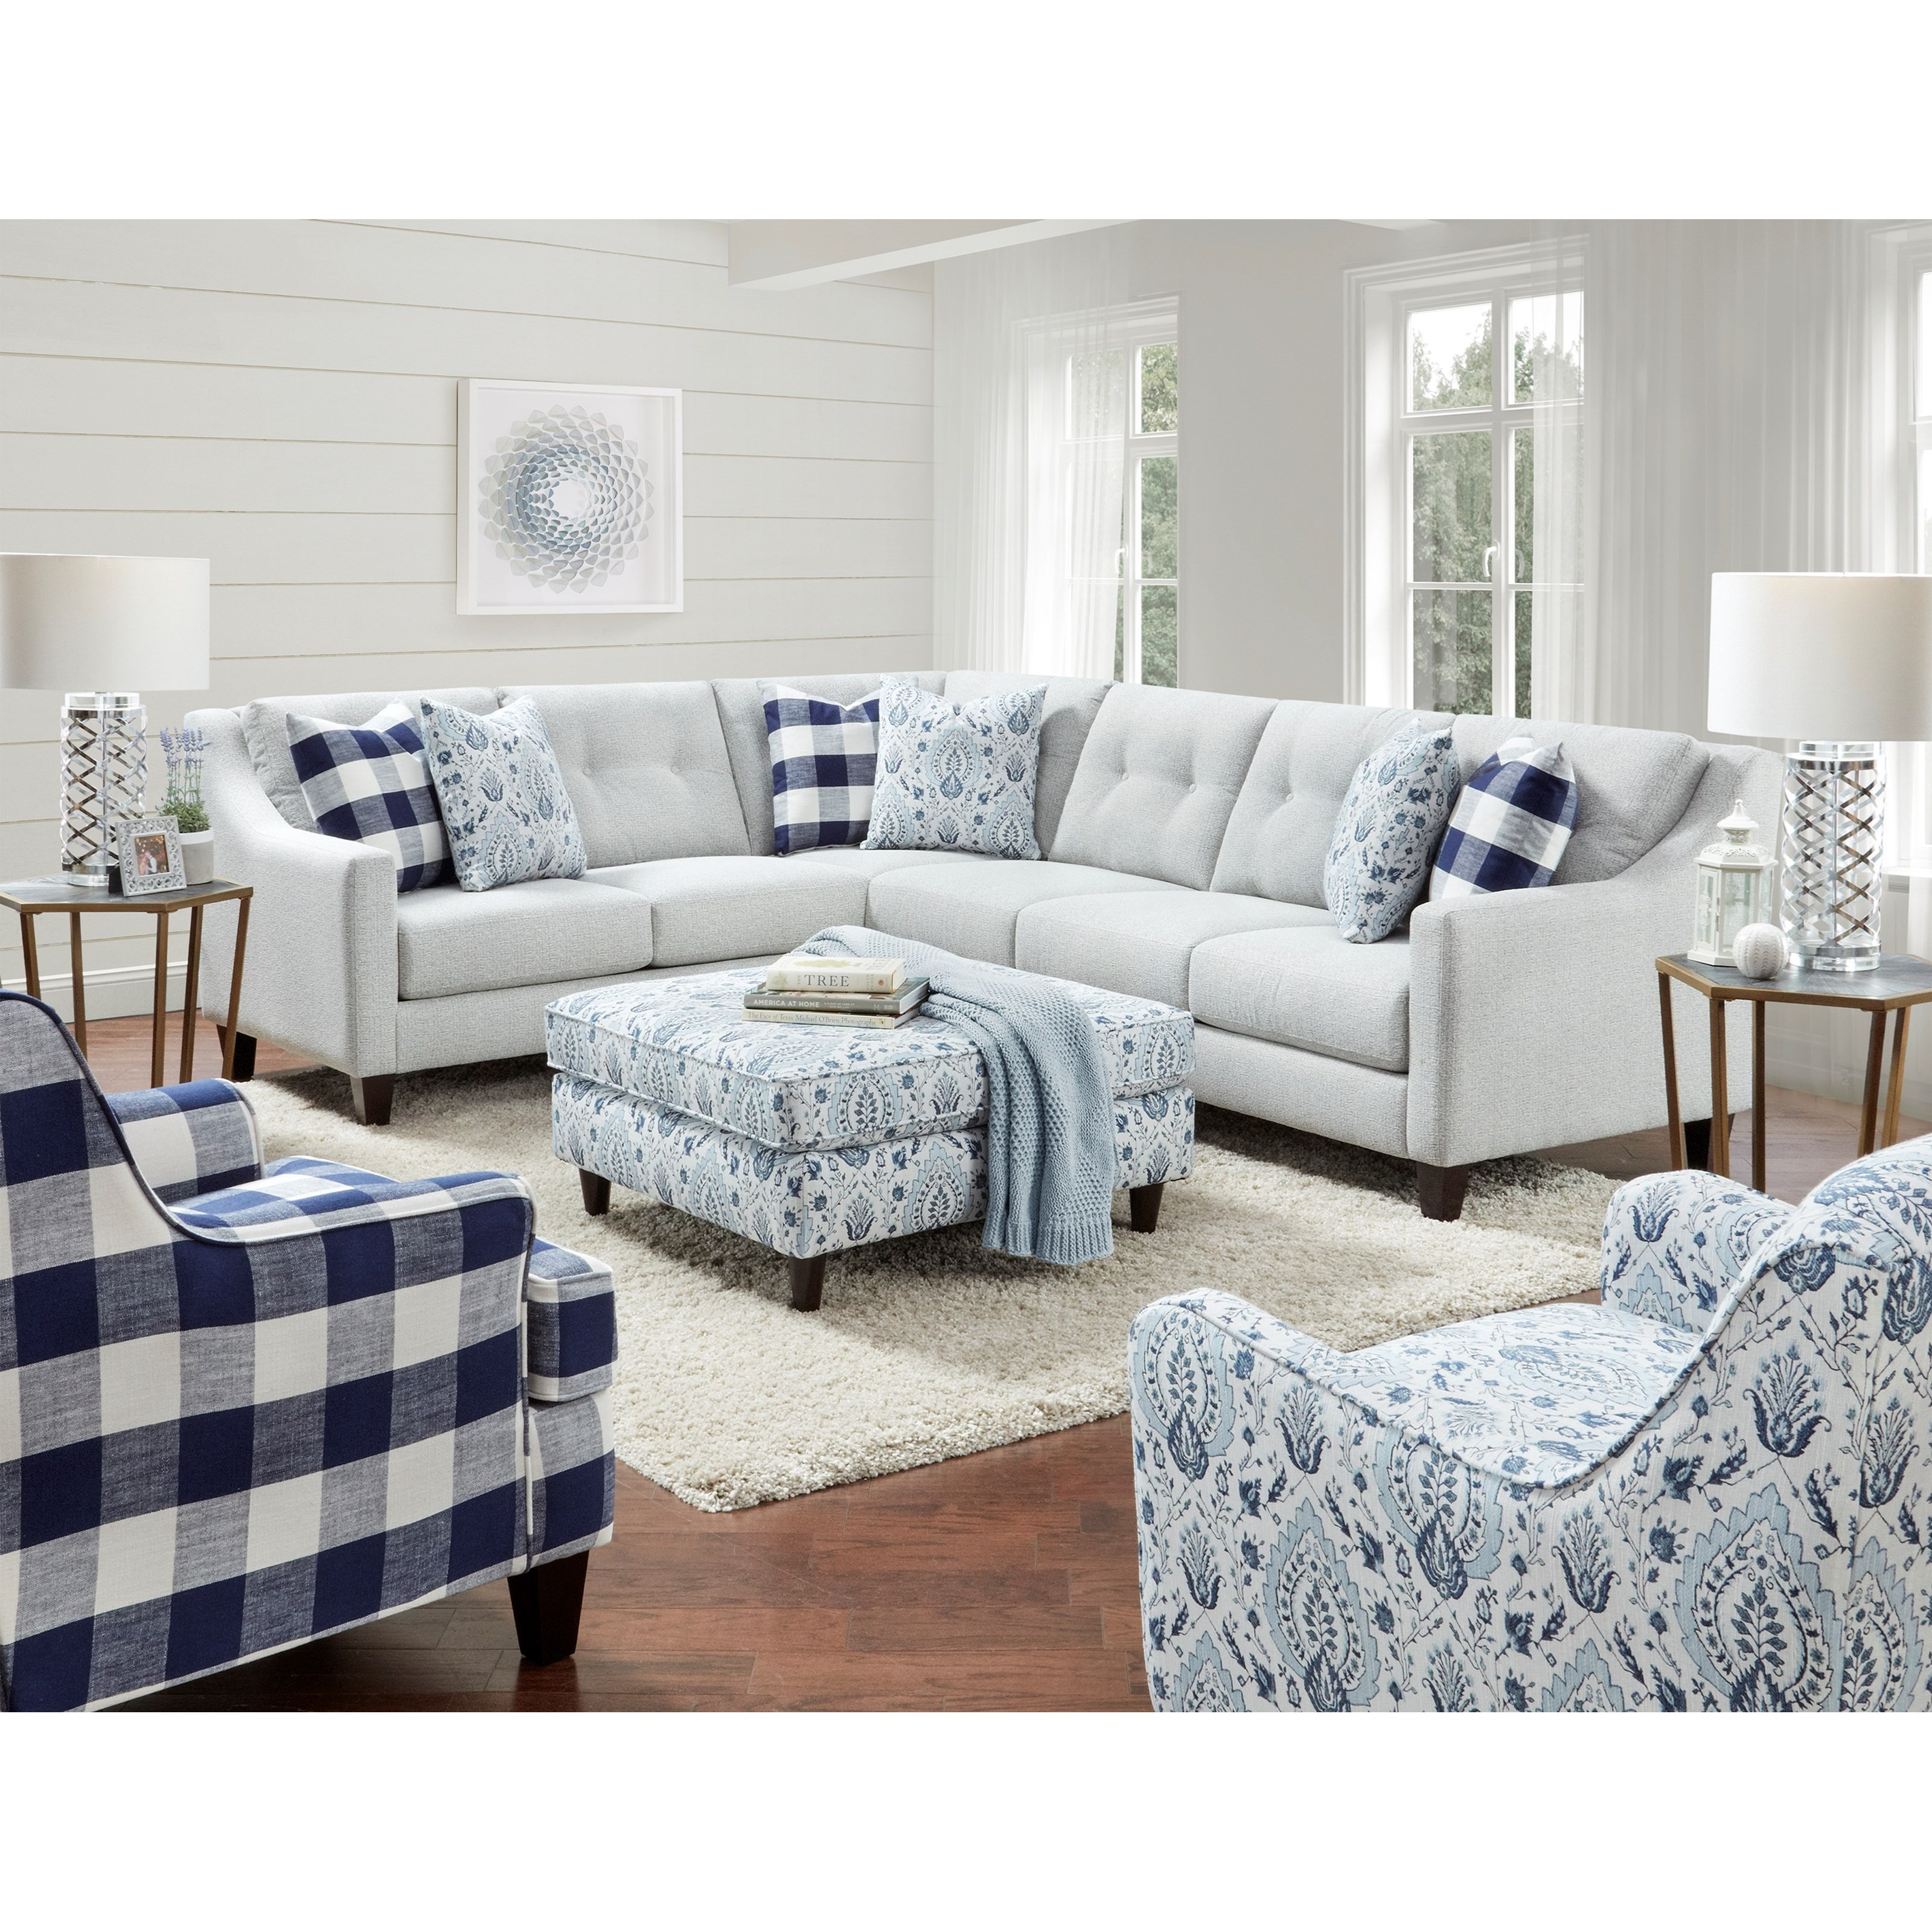 3280 Living Room Group by Fusion Furniture at Prime Brothers Furniture